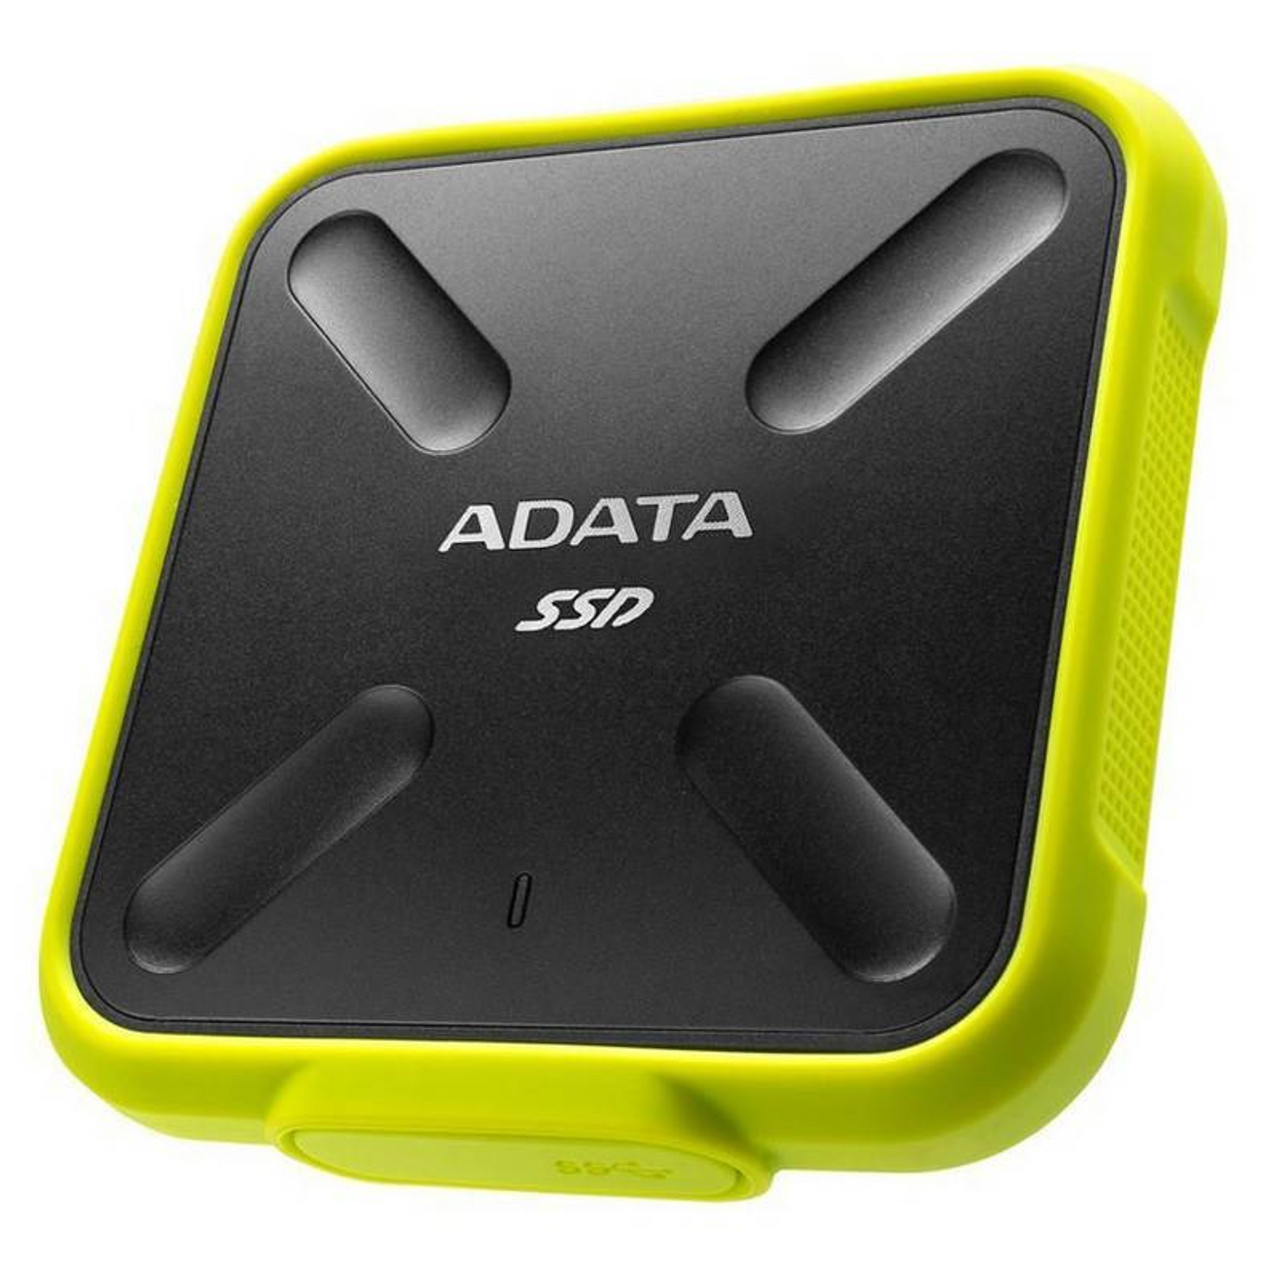 Image for Adata SD700 256GB USB 3.1 Portable External Rugged SSD Hard Drive - Yellow CX Computer Superstore